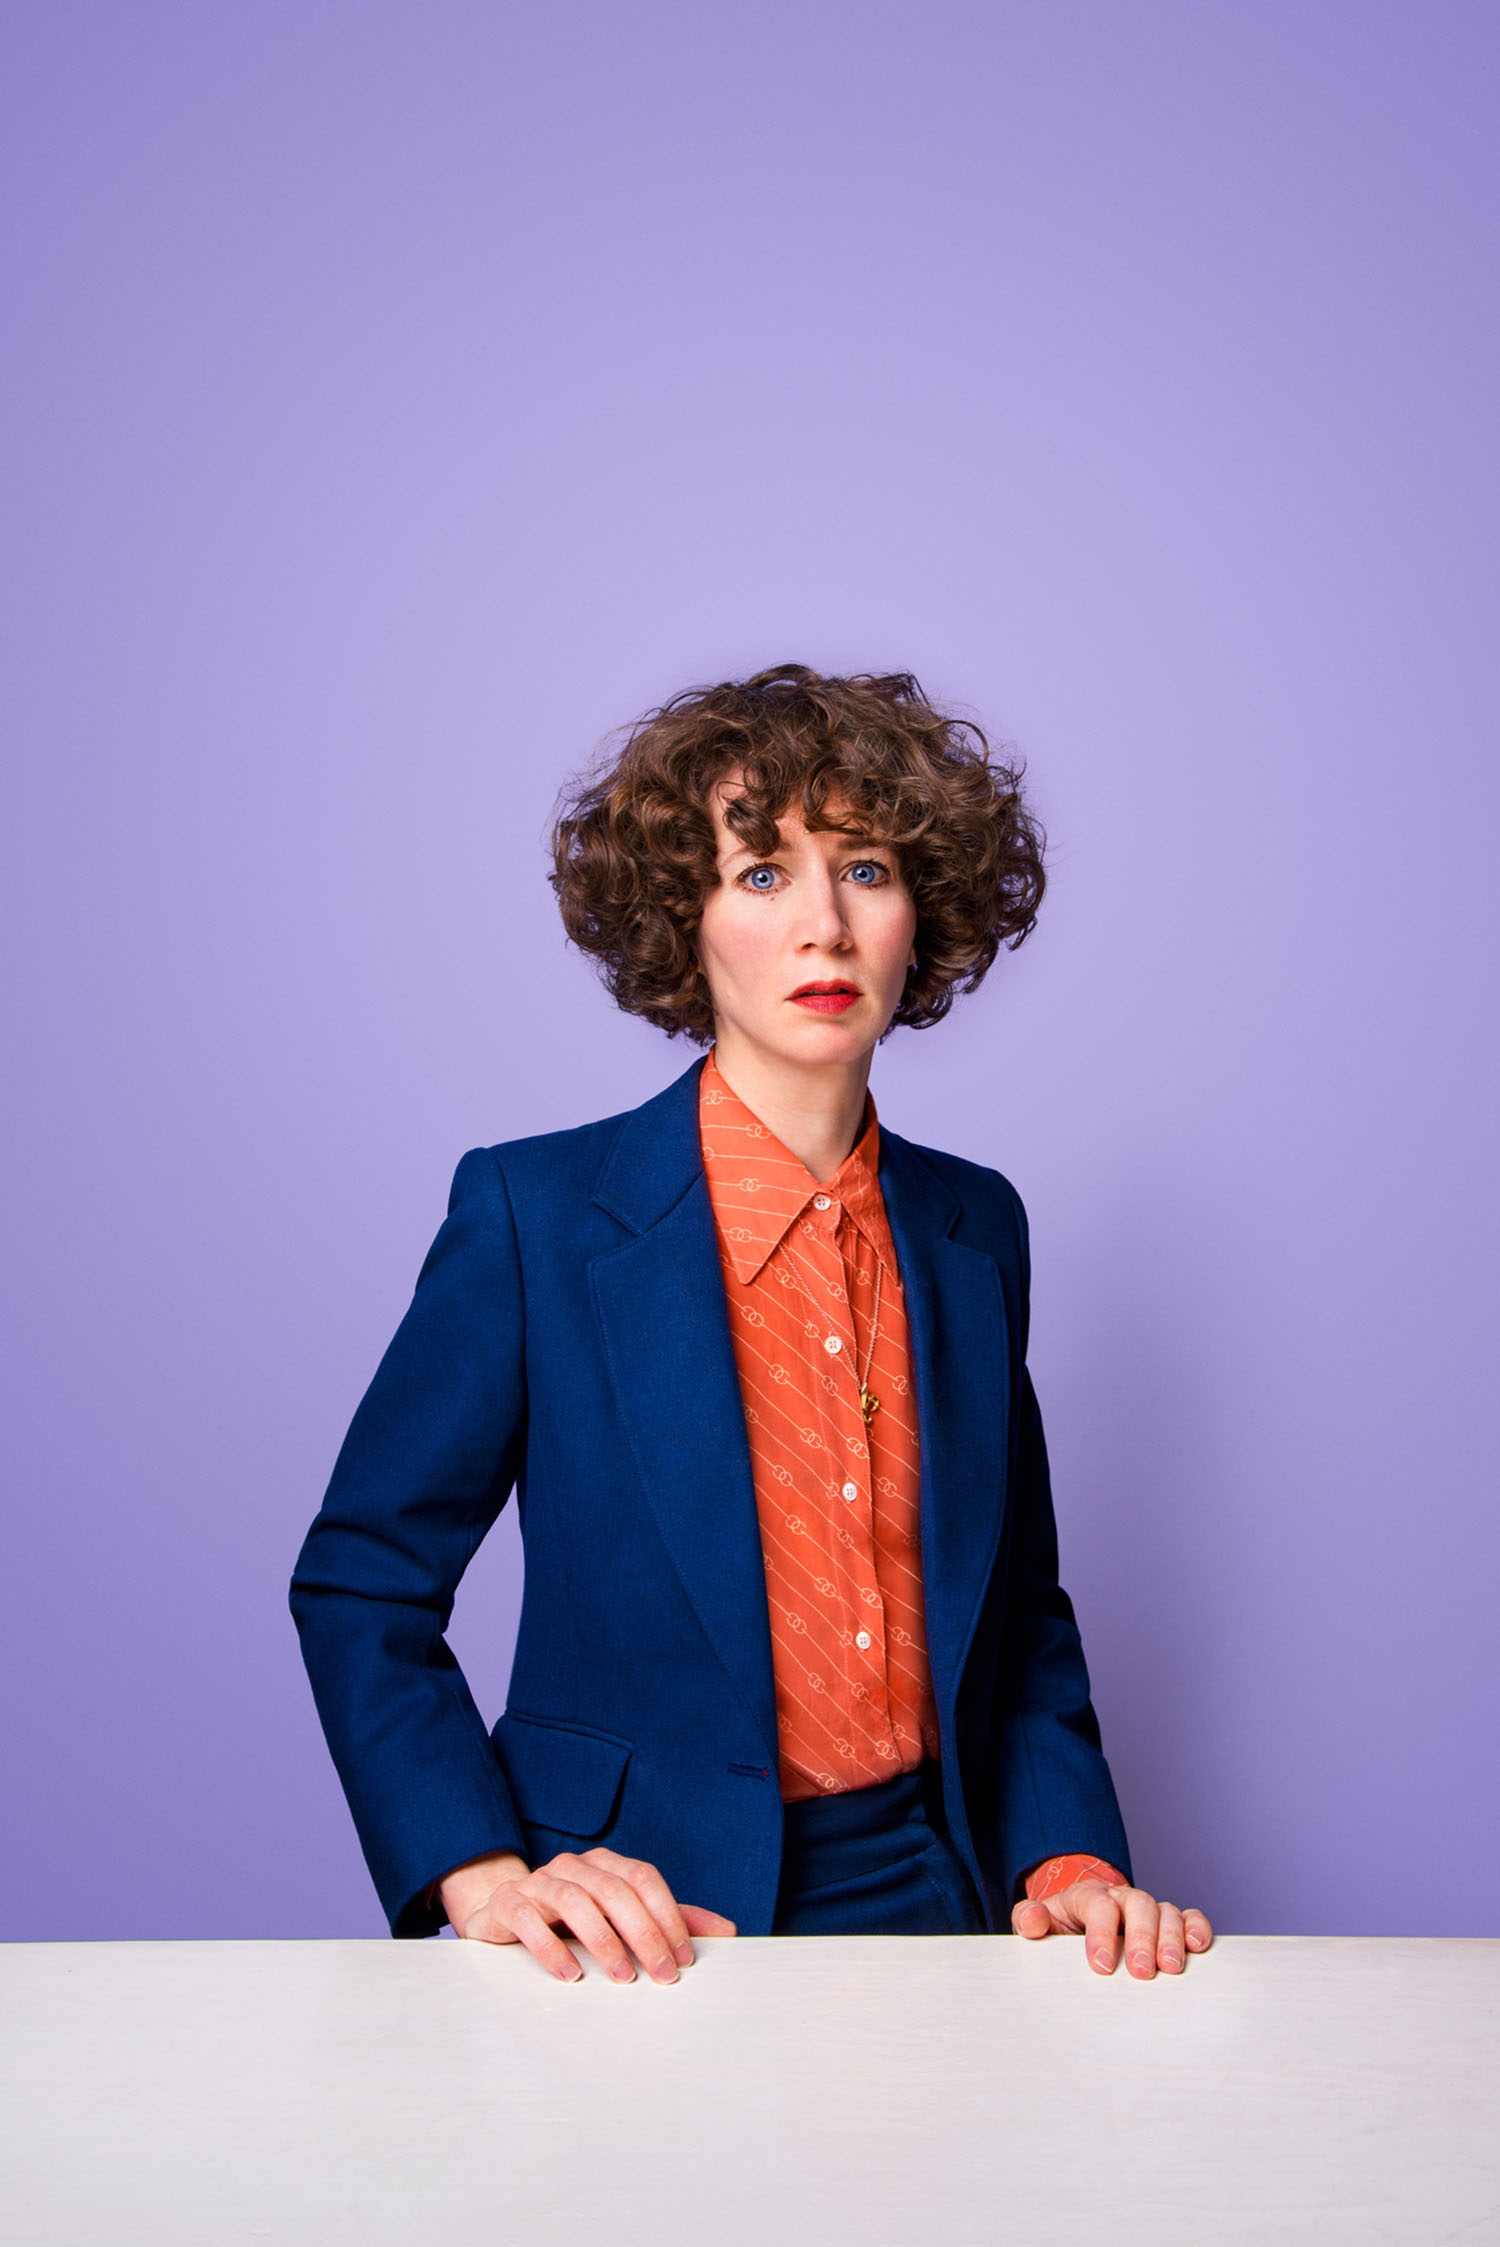 Miranda July, Artist, Los Angles, California, 2016